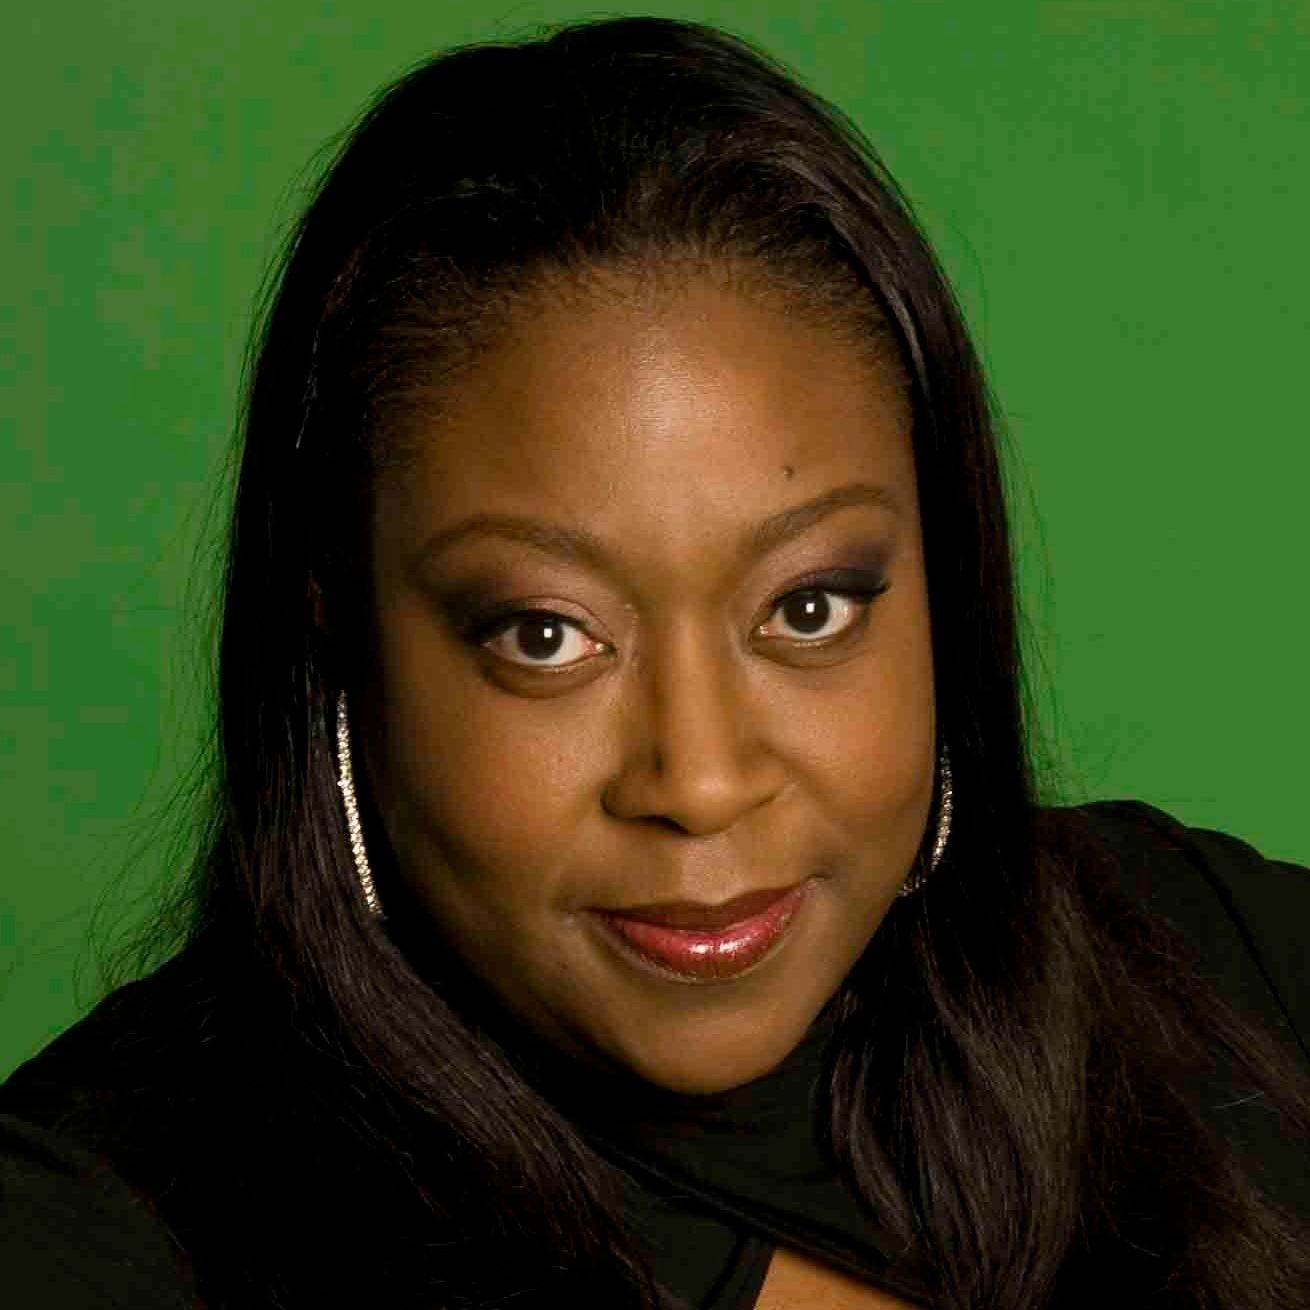 Comedian Loni Love performs at the Improv Comedy Showcase in Schaumburg.